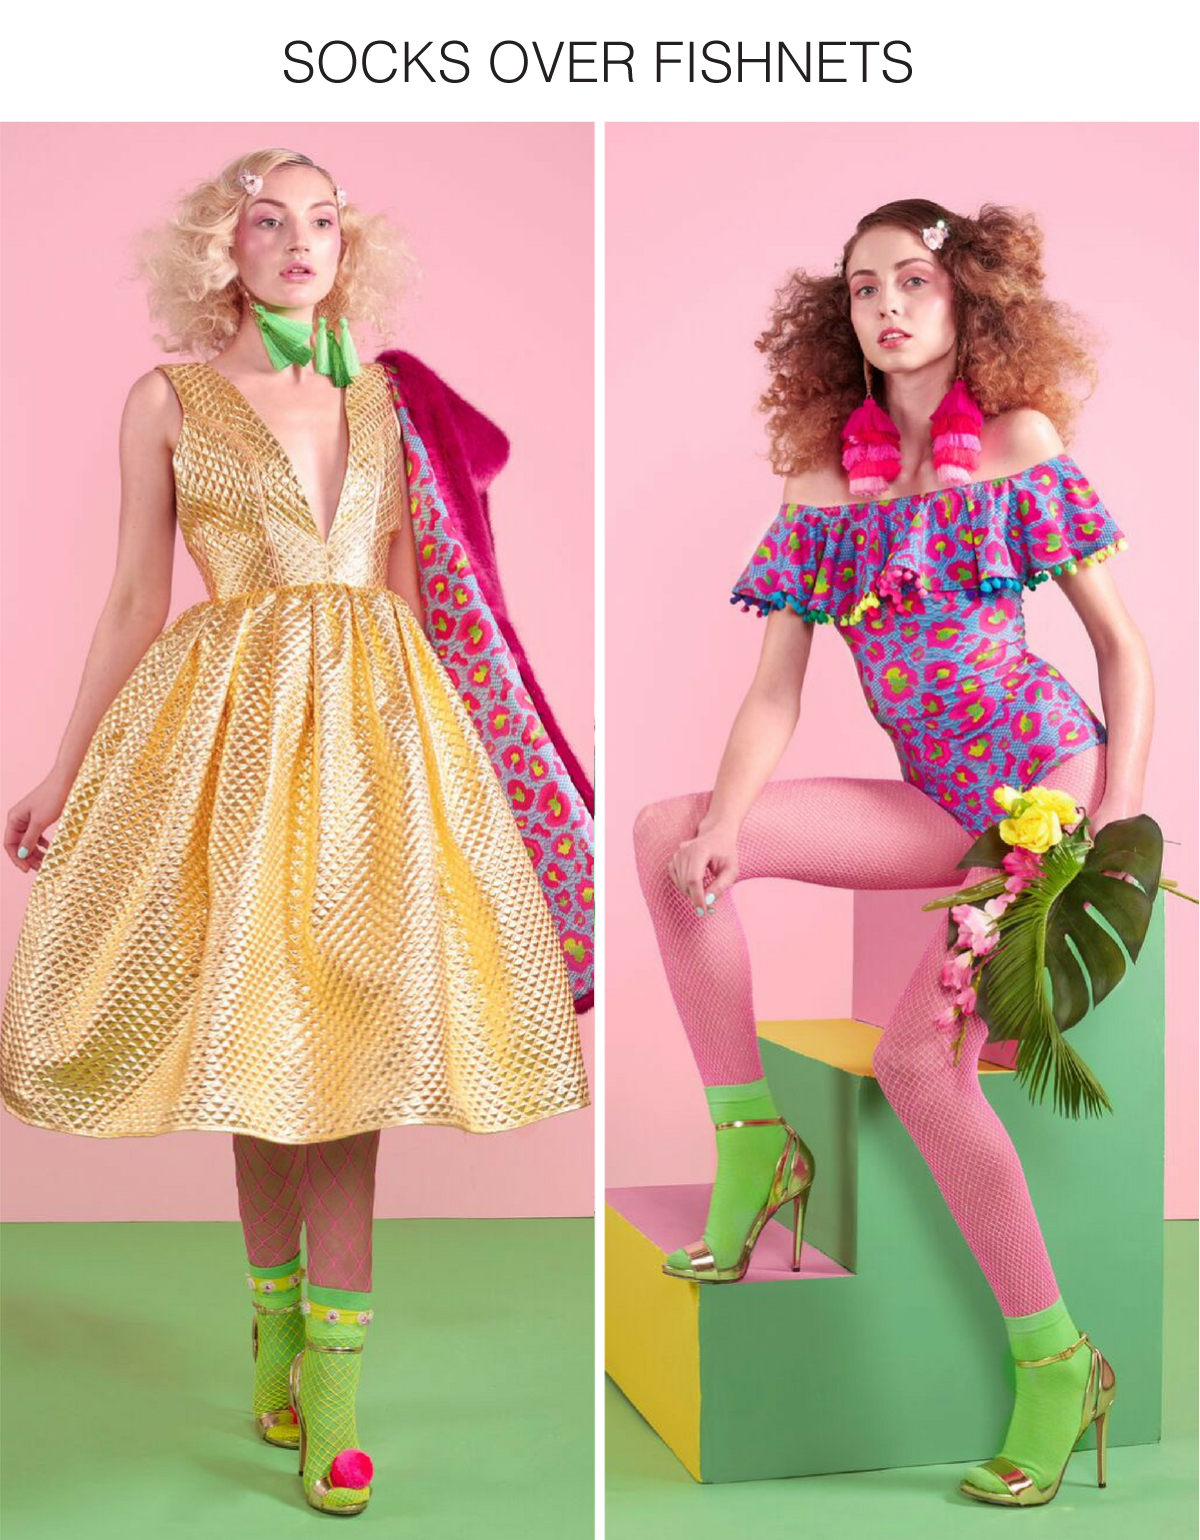 pink and pastel green set with models wearing pastel outfits